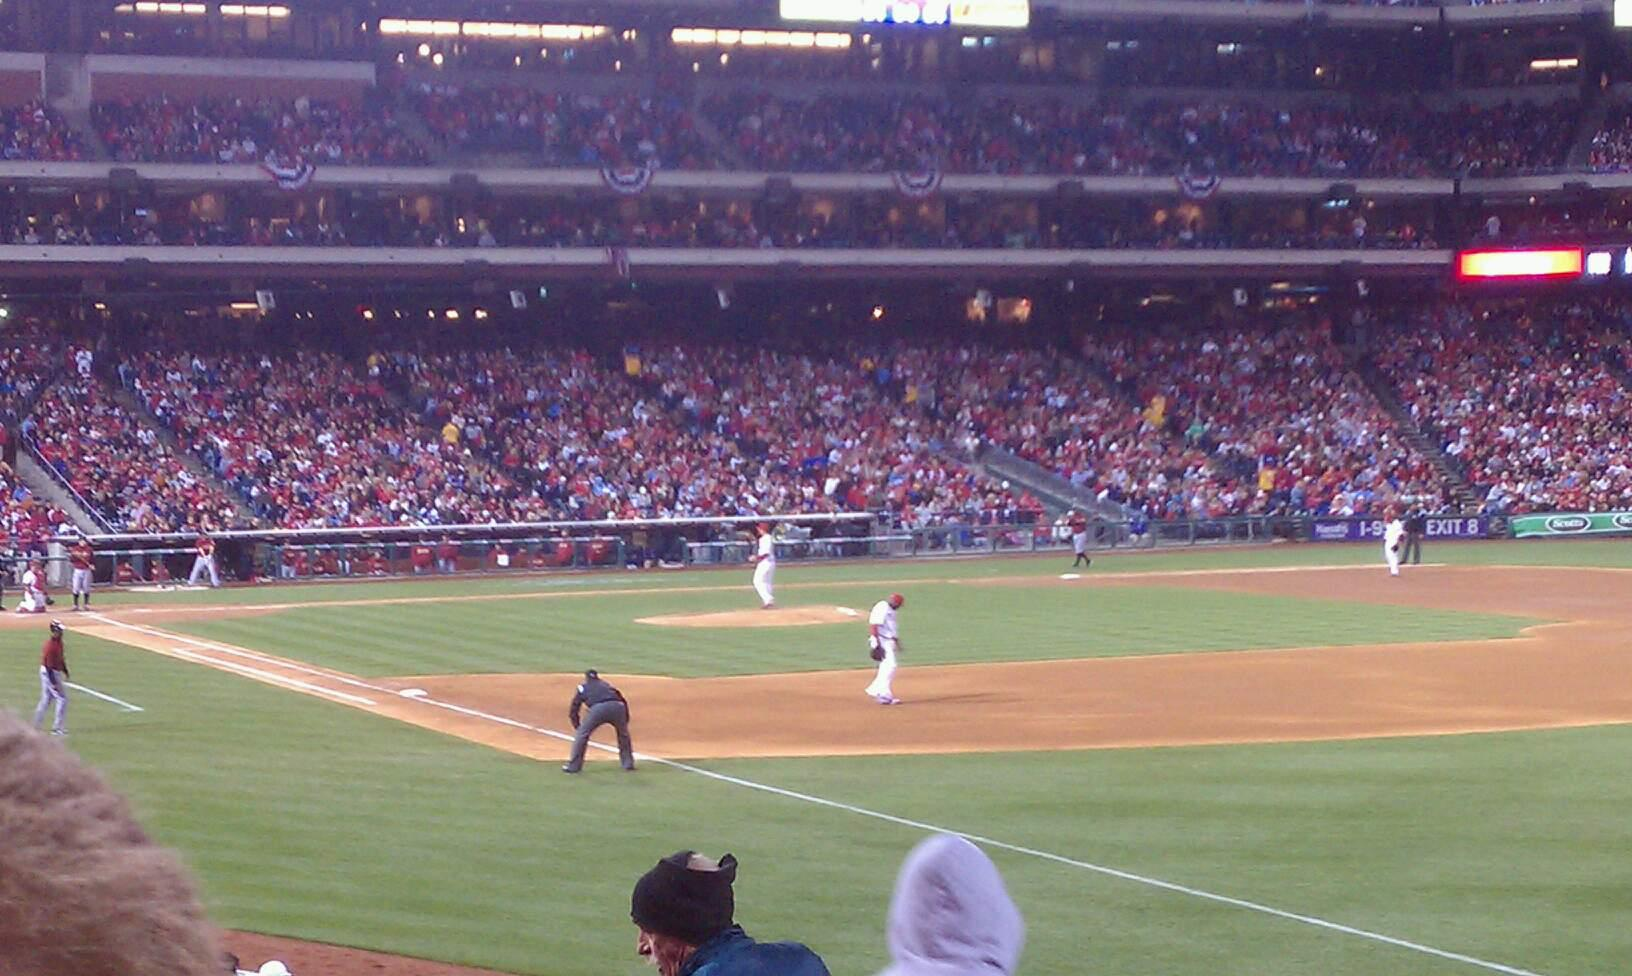 Citizens Bank Park Section 109 Row 25 Seat 15